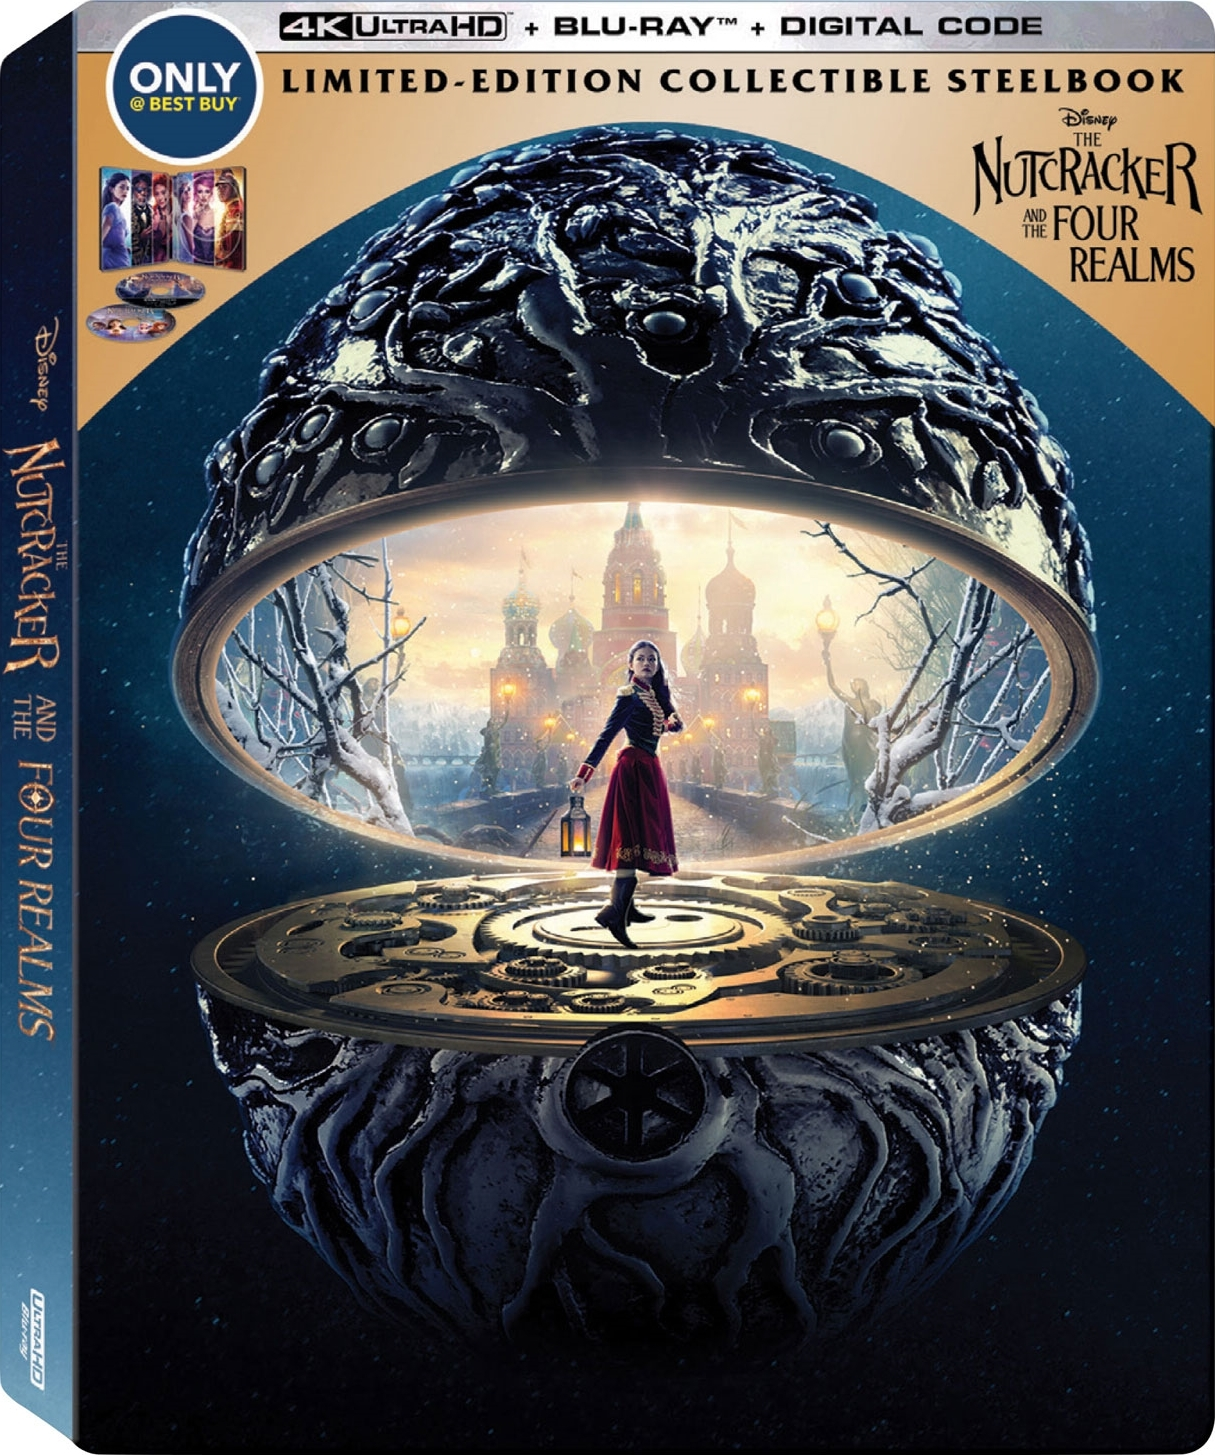 The Nutcracker and the Four Realms (SteelBook)(4K Ultra HD Blu-ray)(Pre-order / TBA)